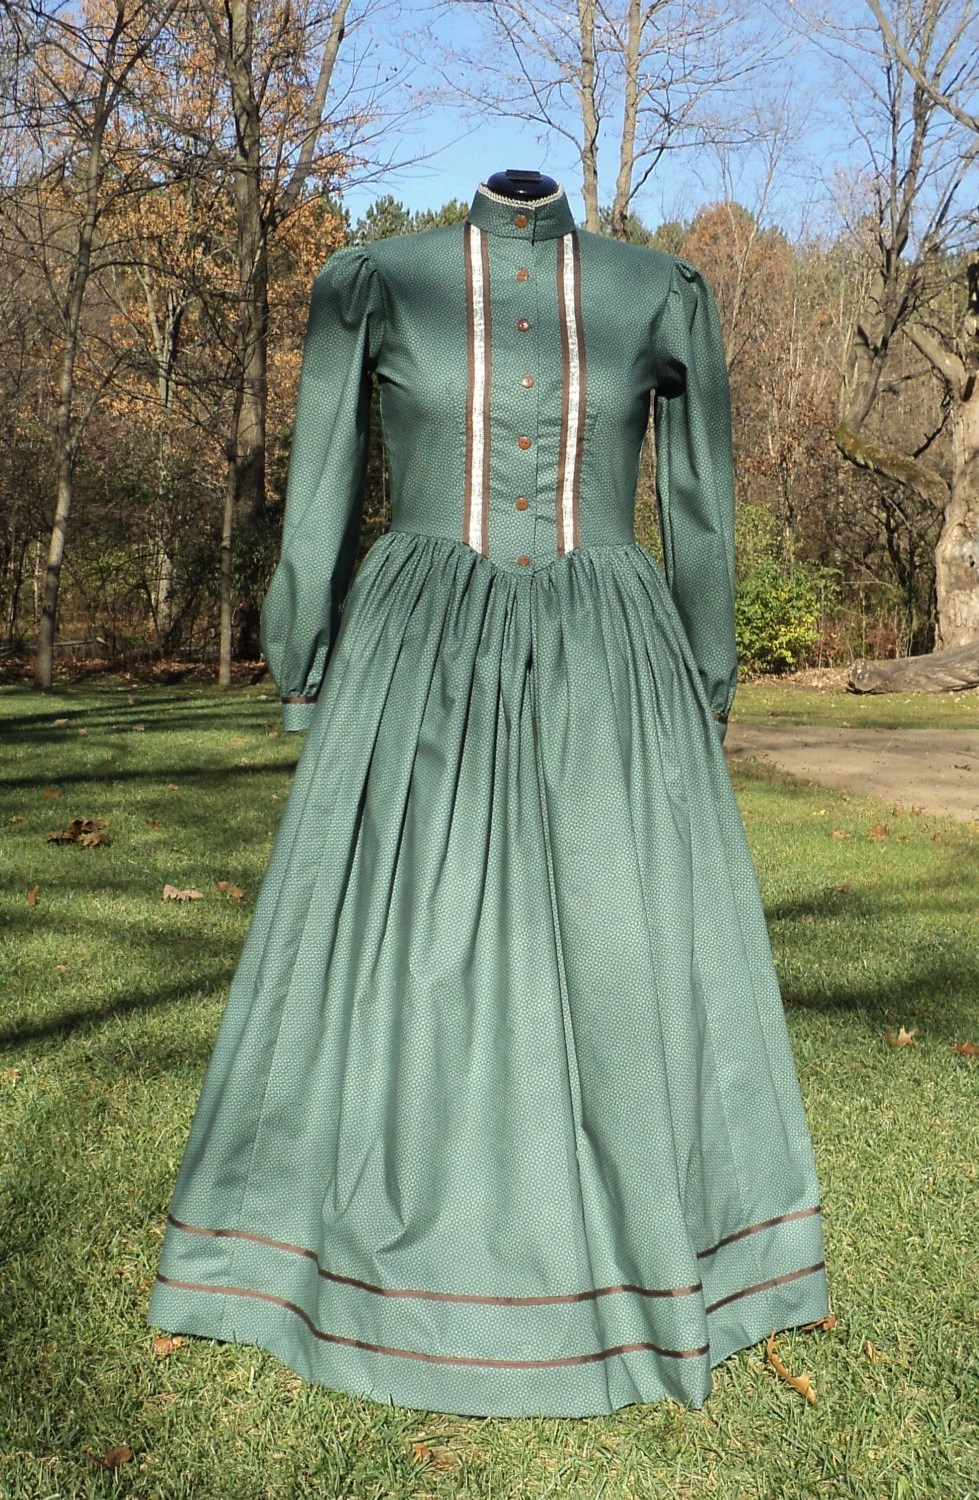 House Cotton Fashioned Old Dresses